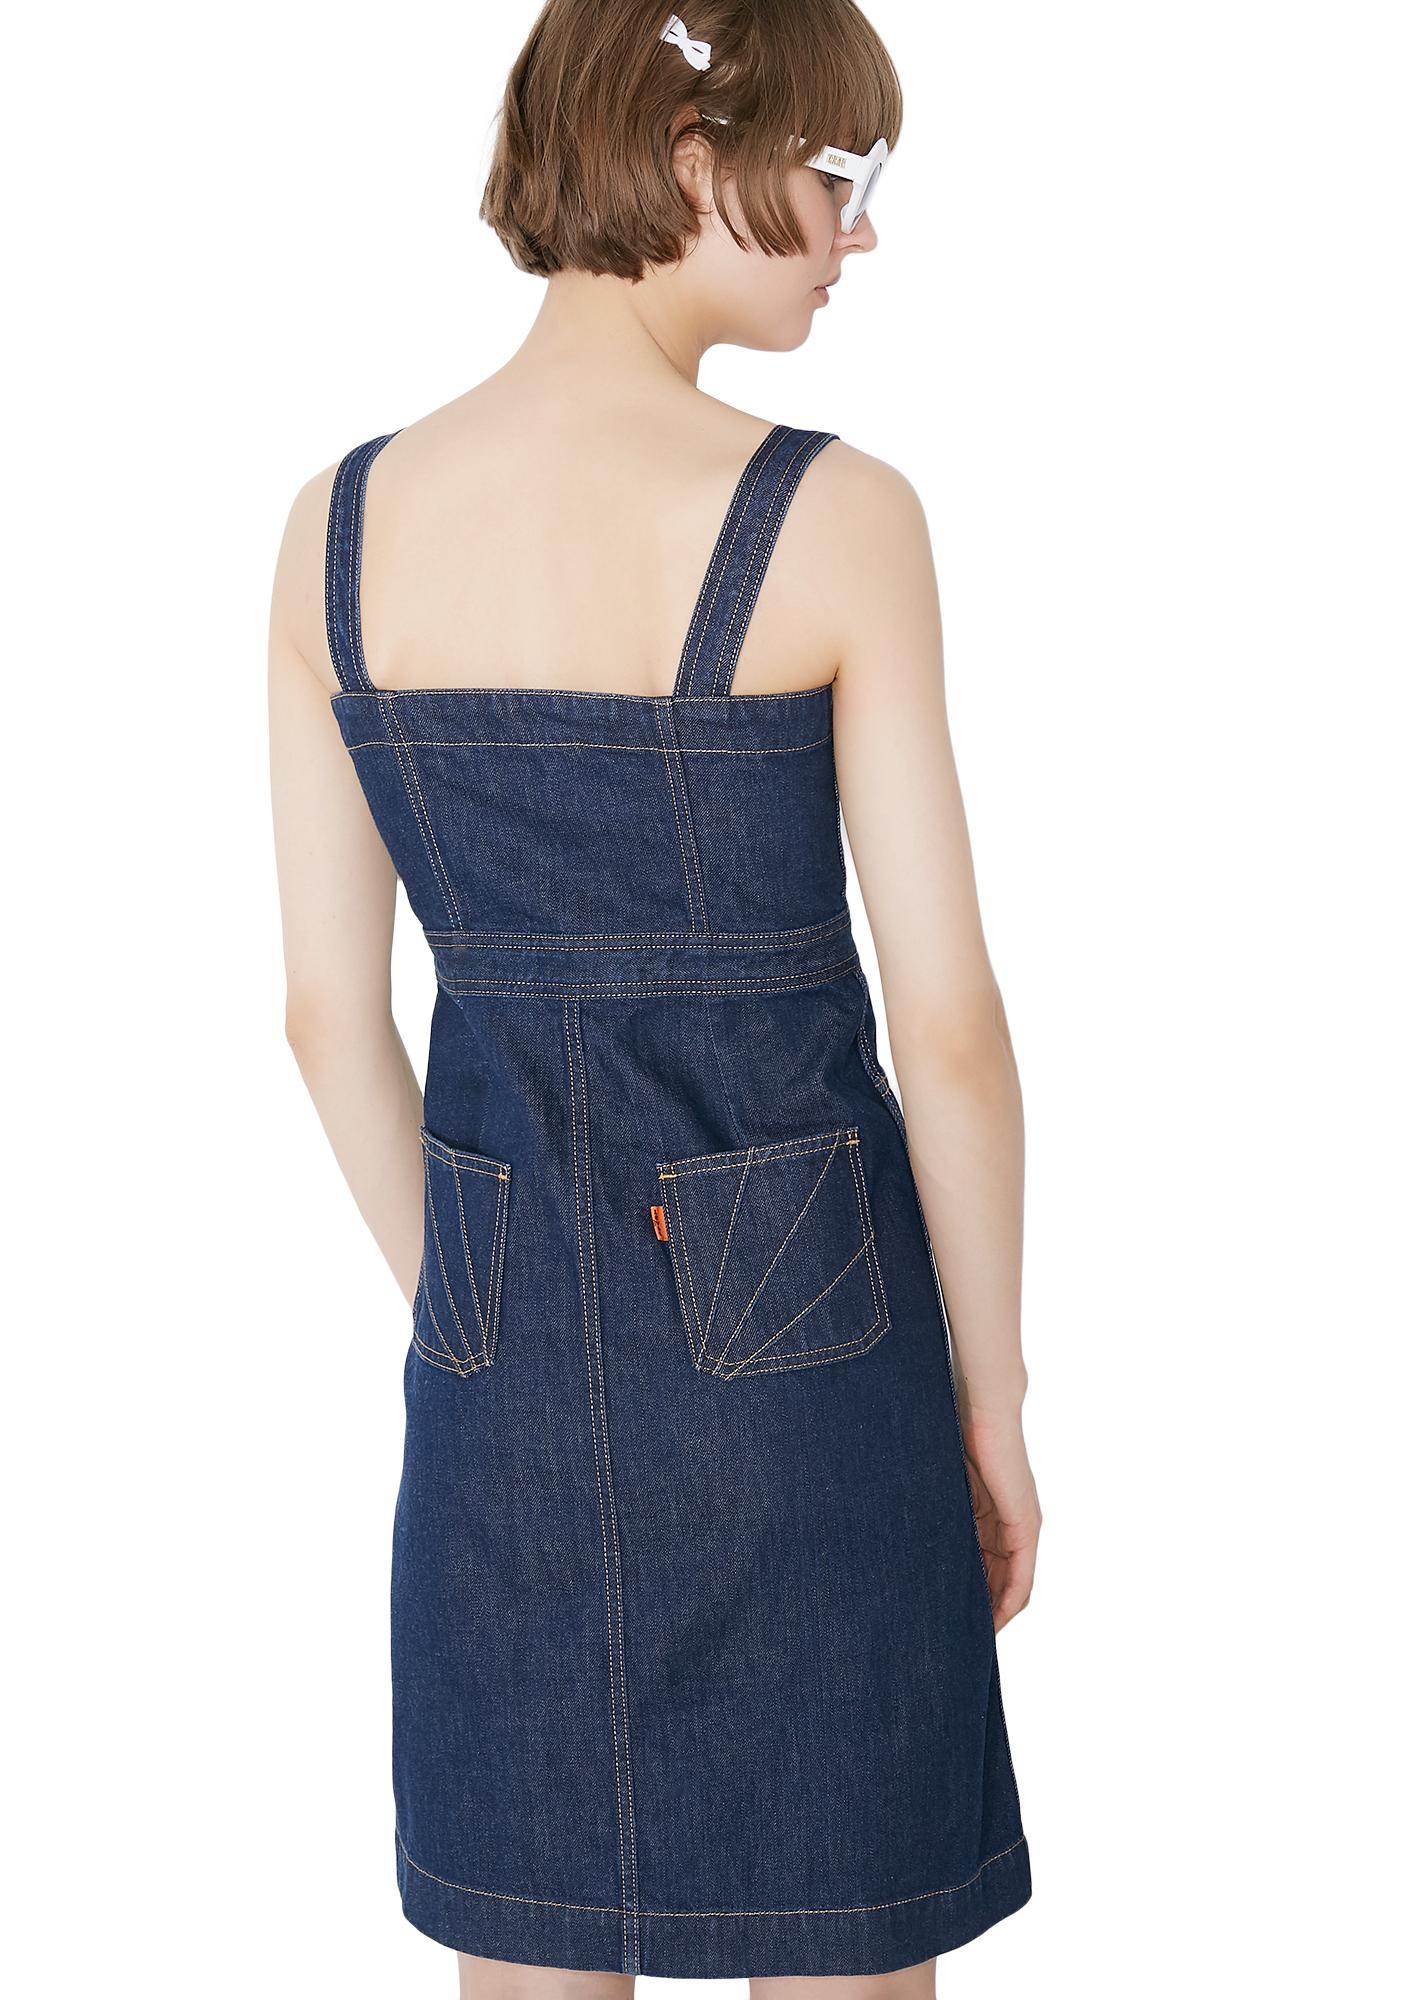 Levis Orange Tab Dress